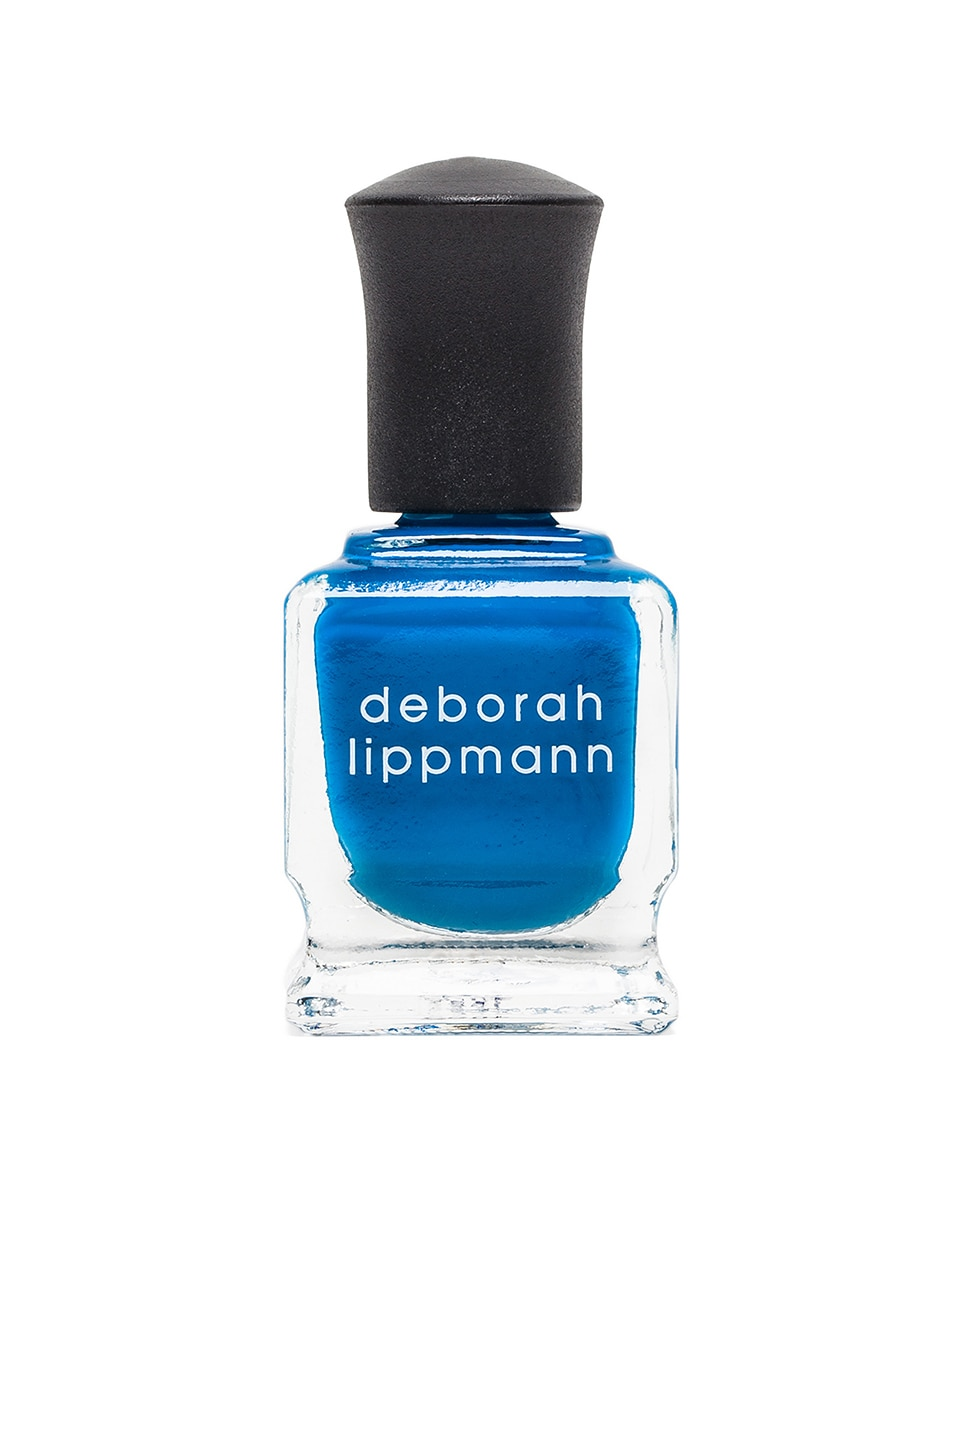 Deborah Lippmann Nail Lacquer in Video Killed the Radio Star